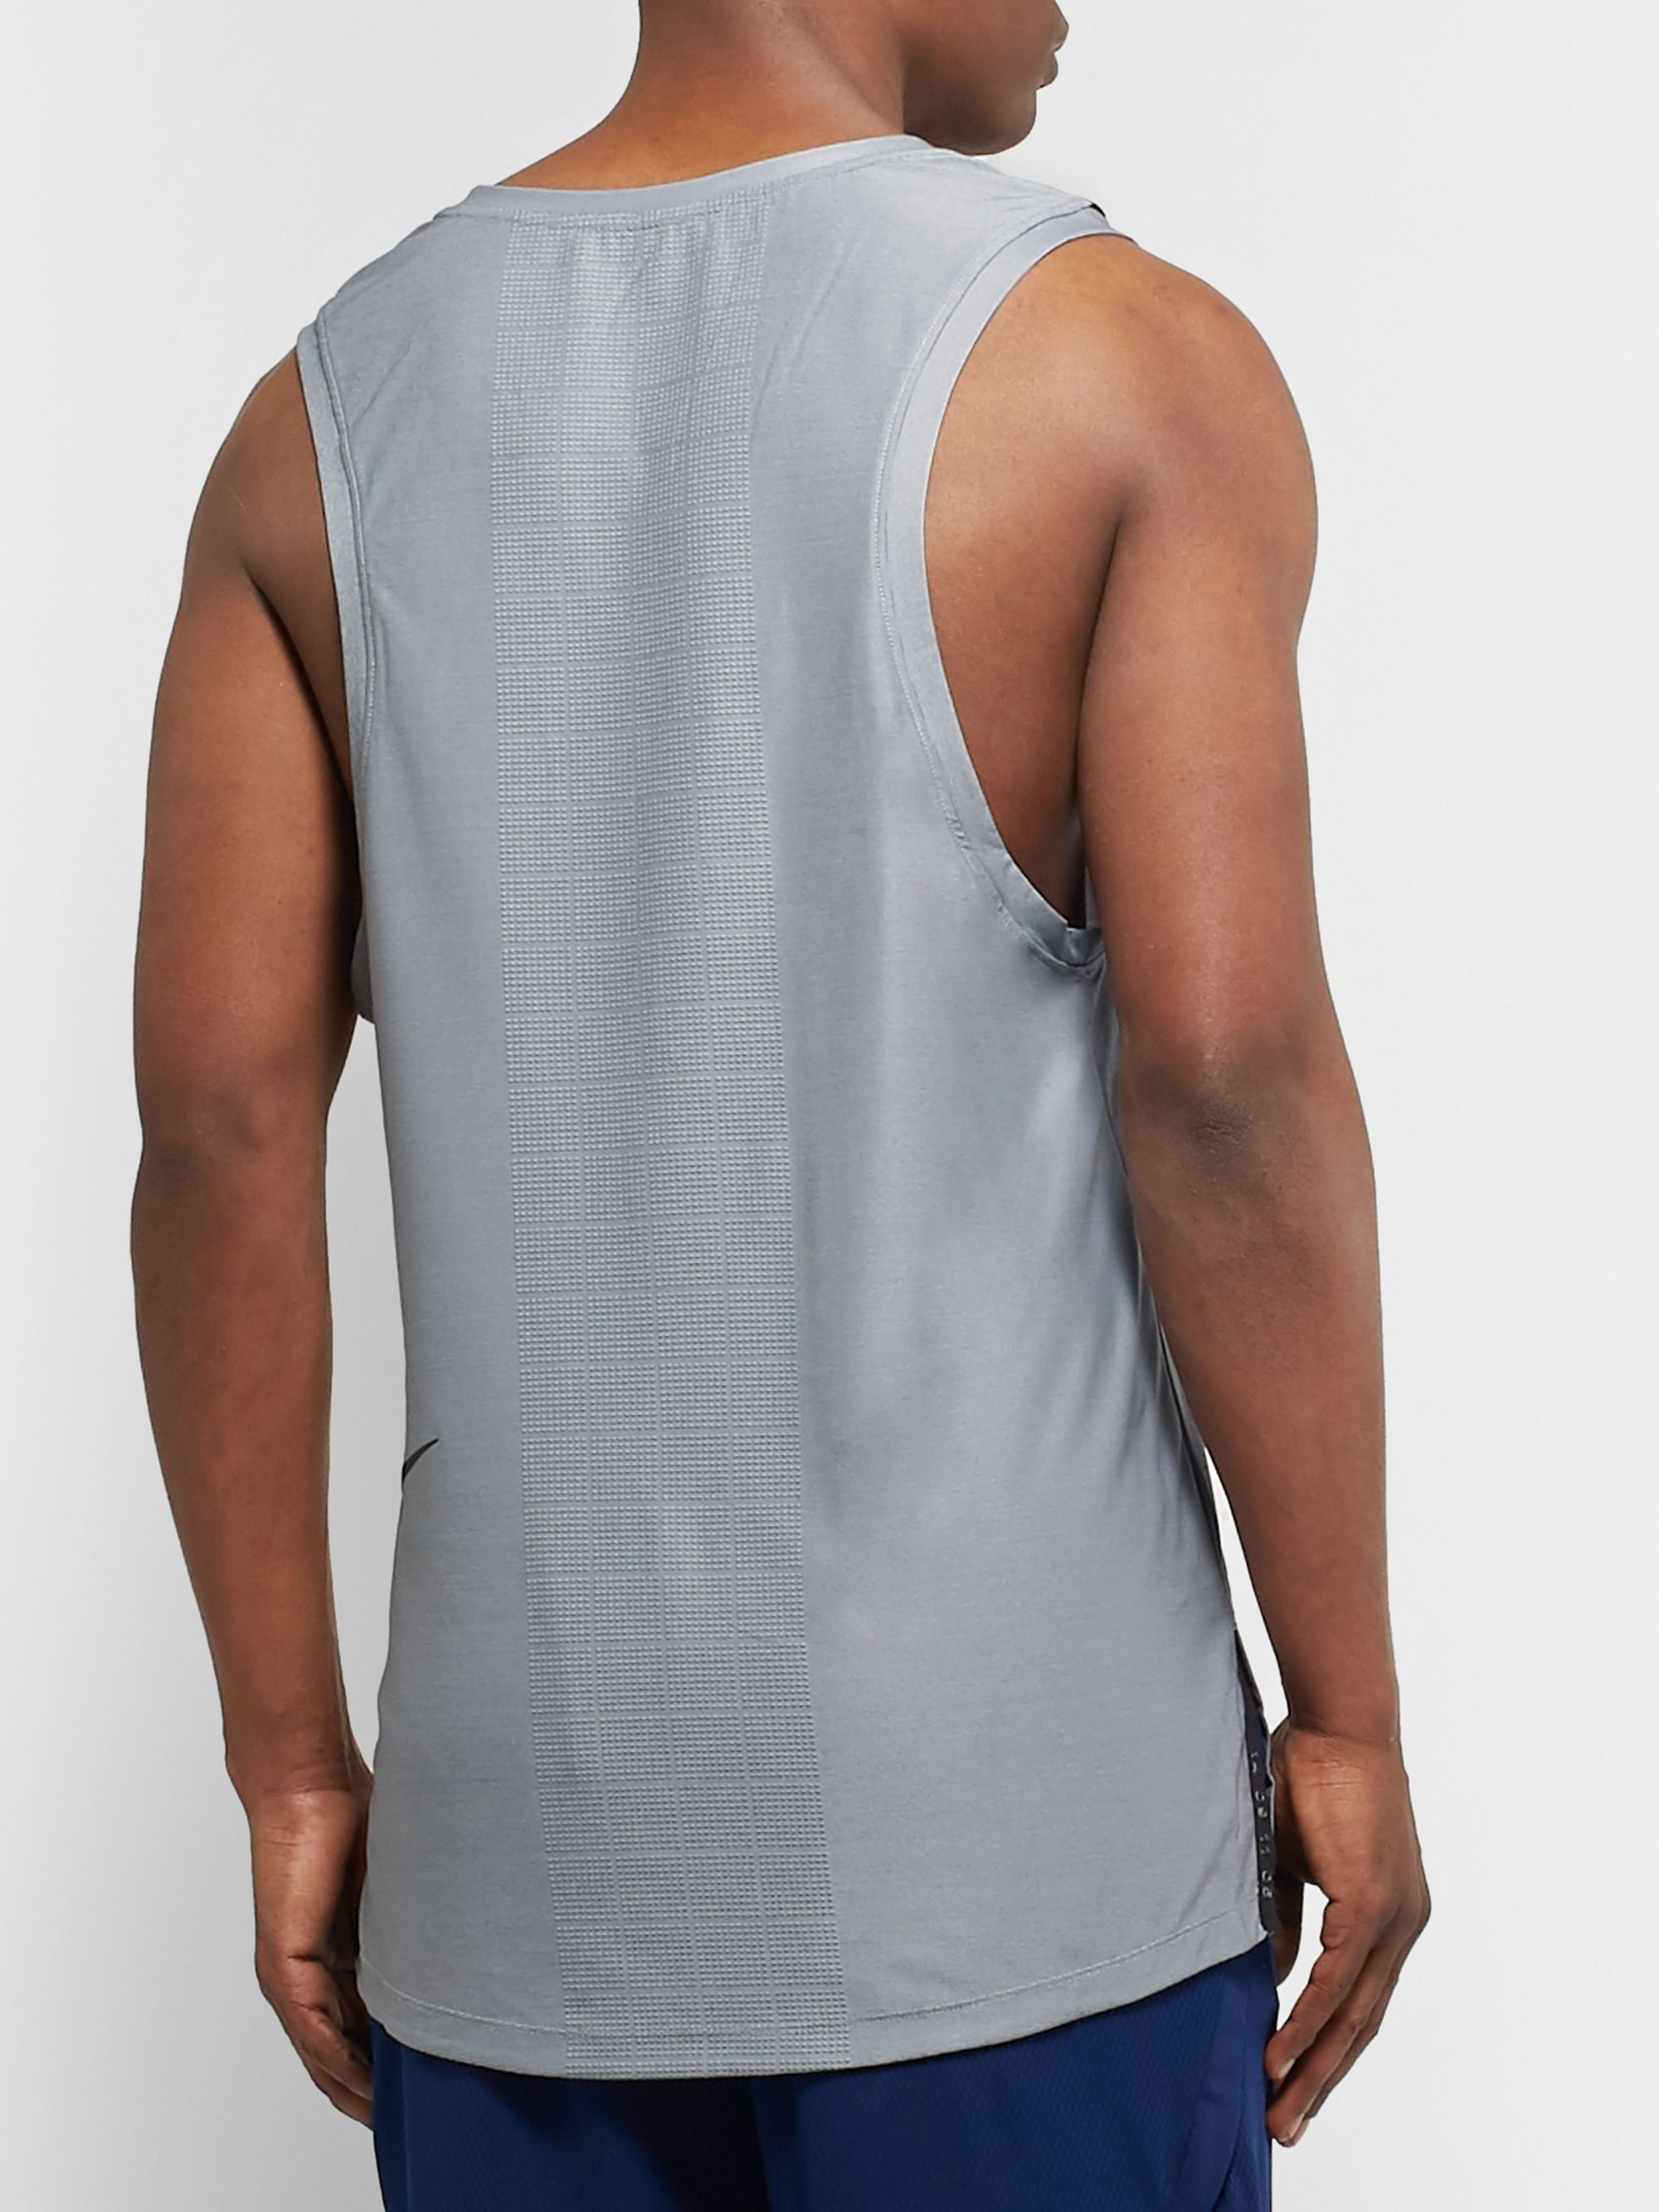 Nike Training Tech Pack Dri-FIT Tank Top